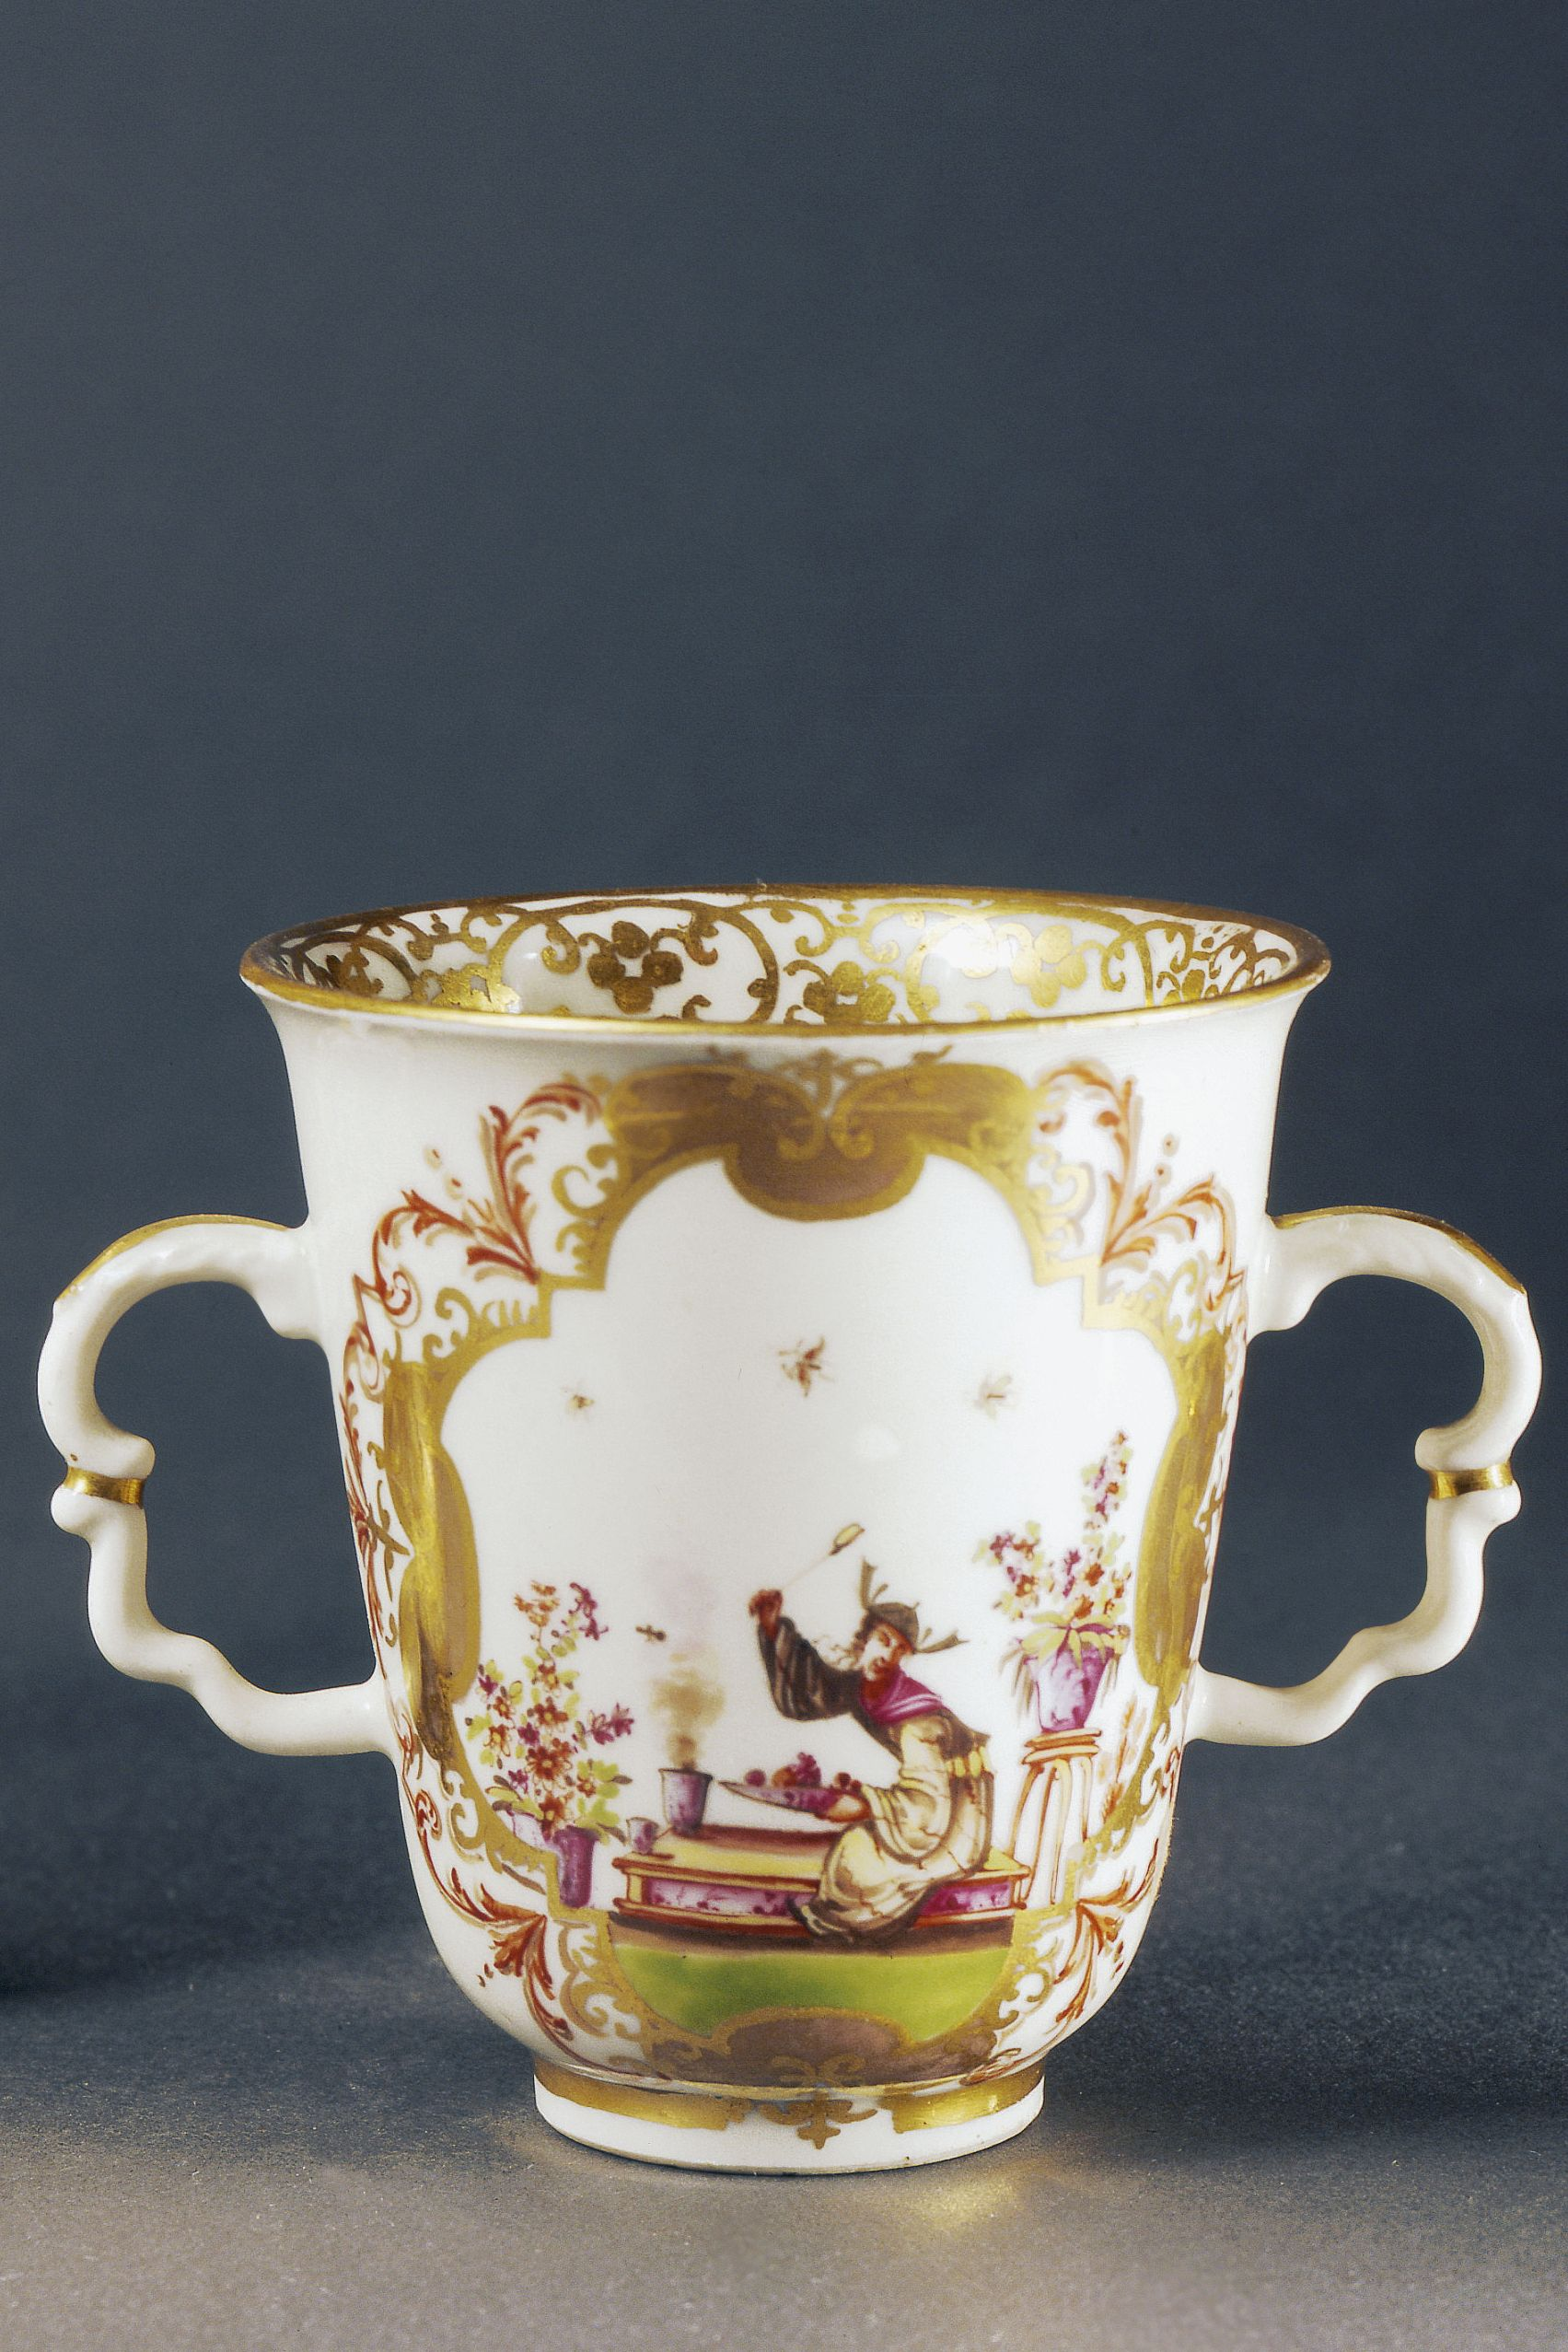 12 Things You Should Never P Up At Antique S Valuable Vintage Items Collect